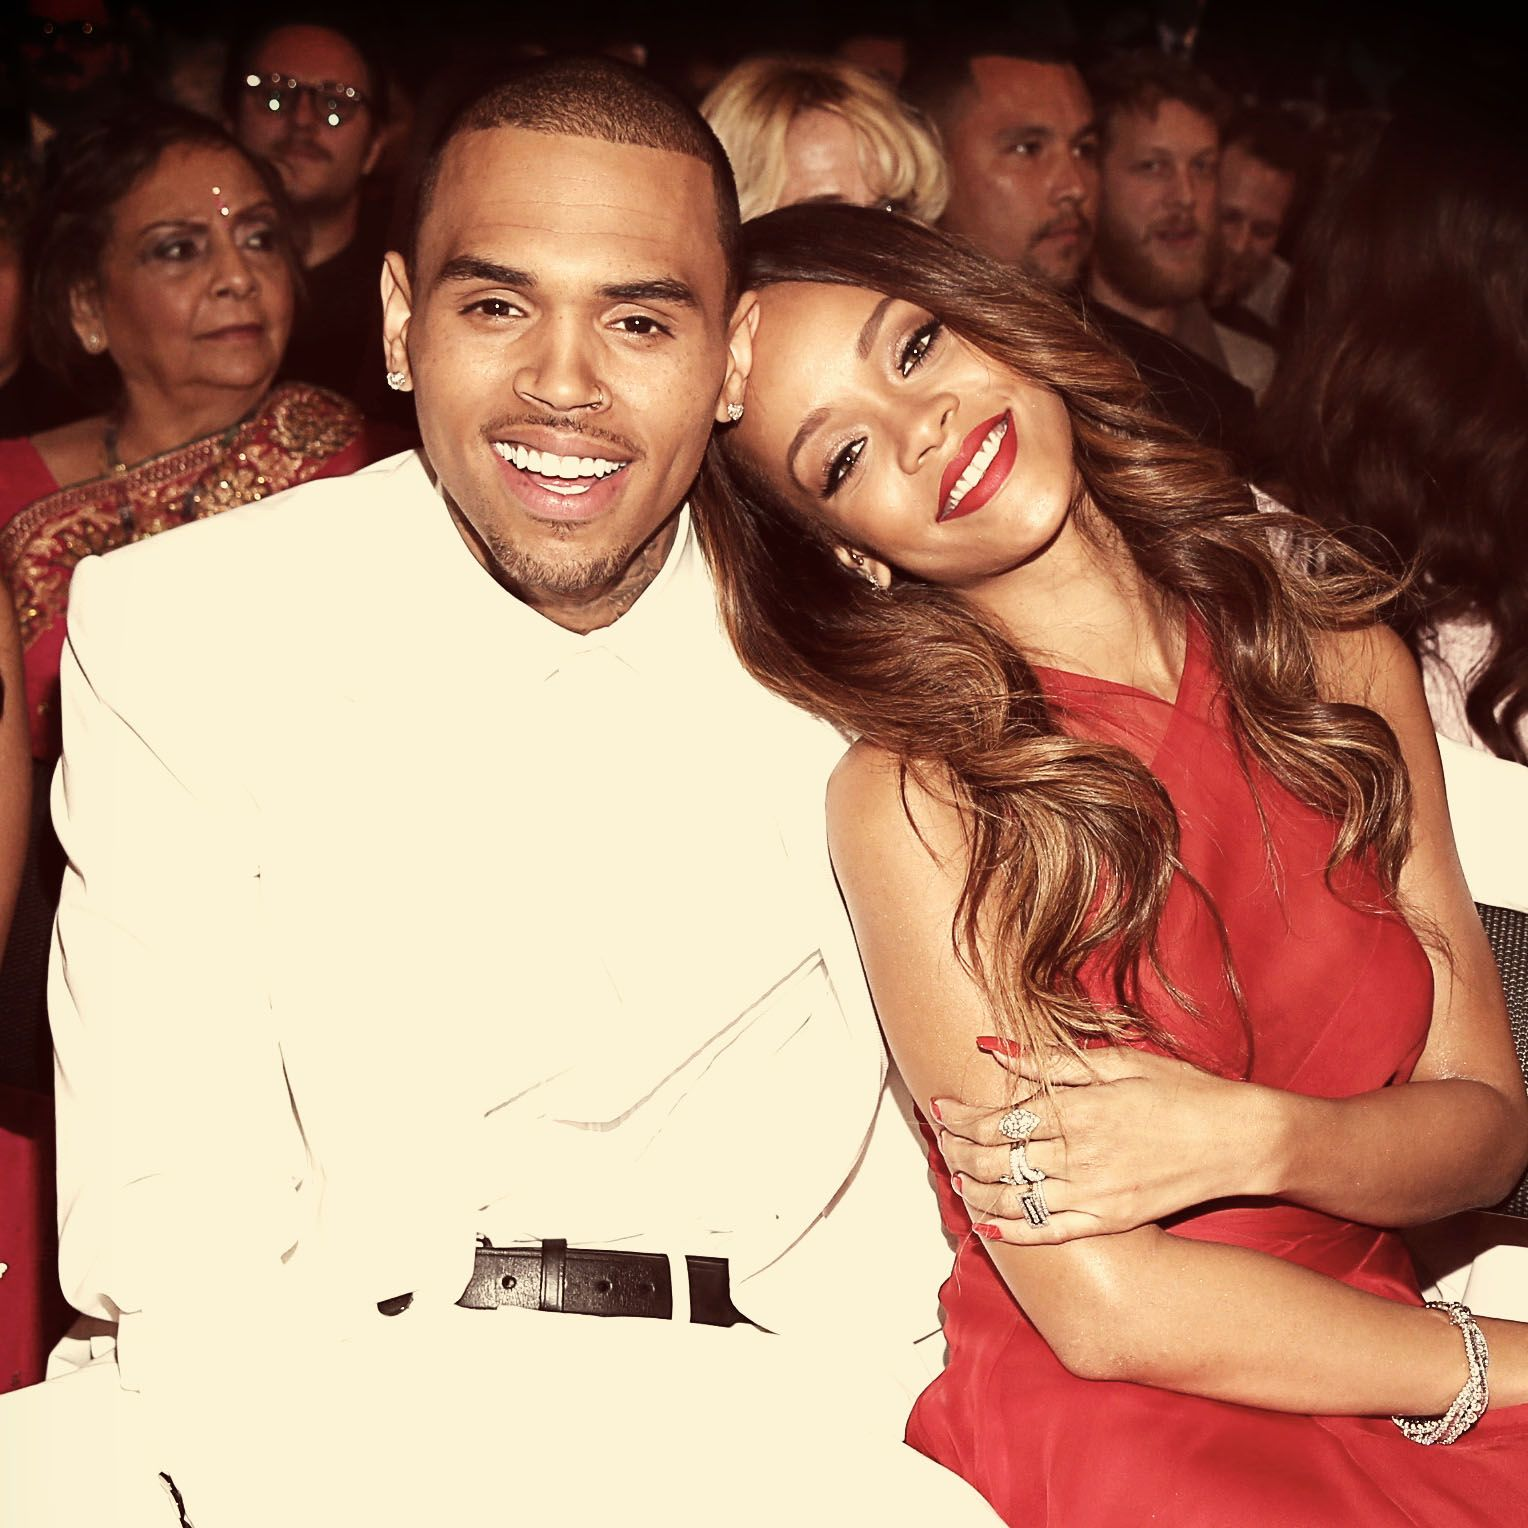 Chris Brown and Rihanna Chris and Rihanna were the It couple of R&B, so it was completely shocking when news broke in 2009 that Chris had been arrested for assaulting his girlfriend after a pre-Grammys party. The two split, eventually reconciled, and finally broke up for good, to the relief of fans.